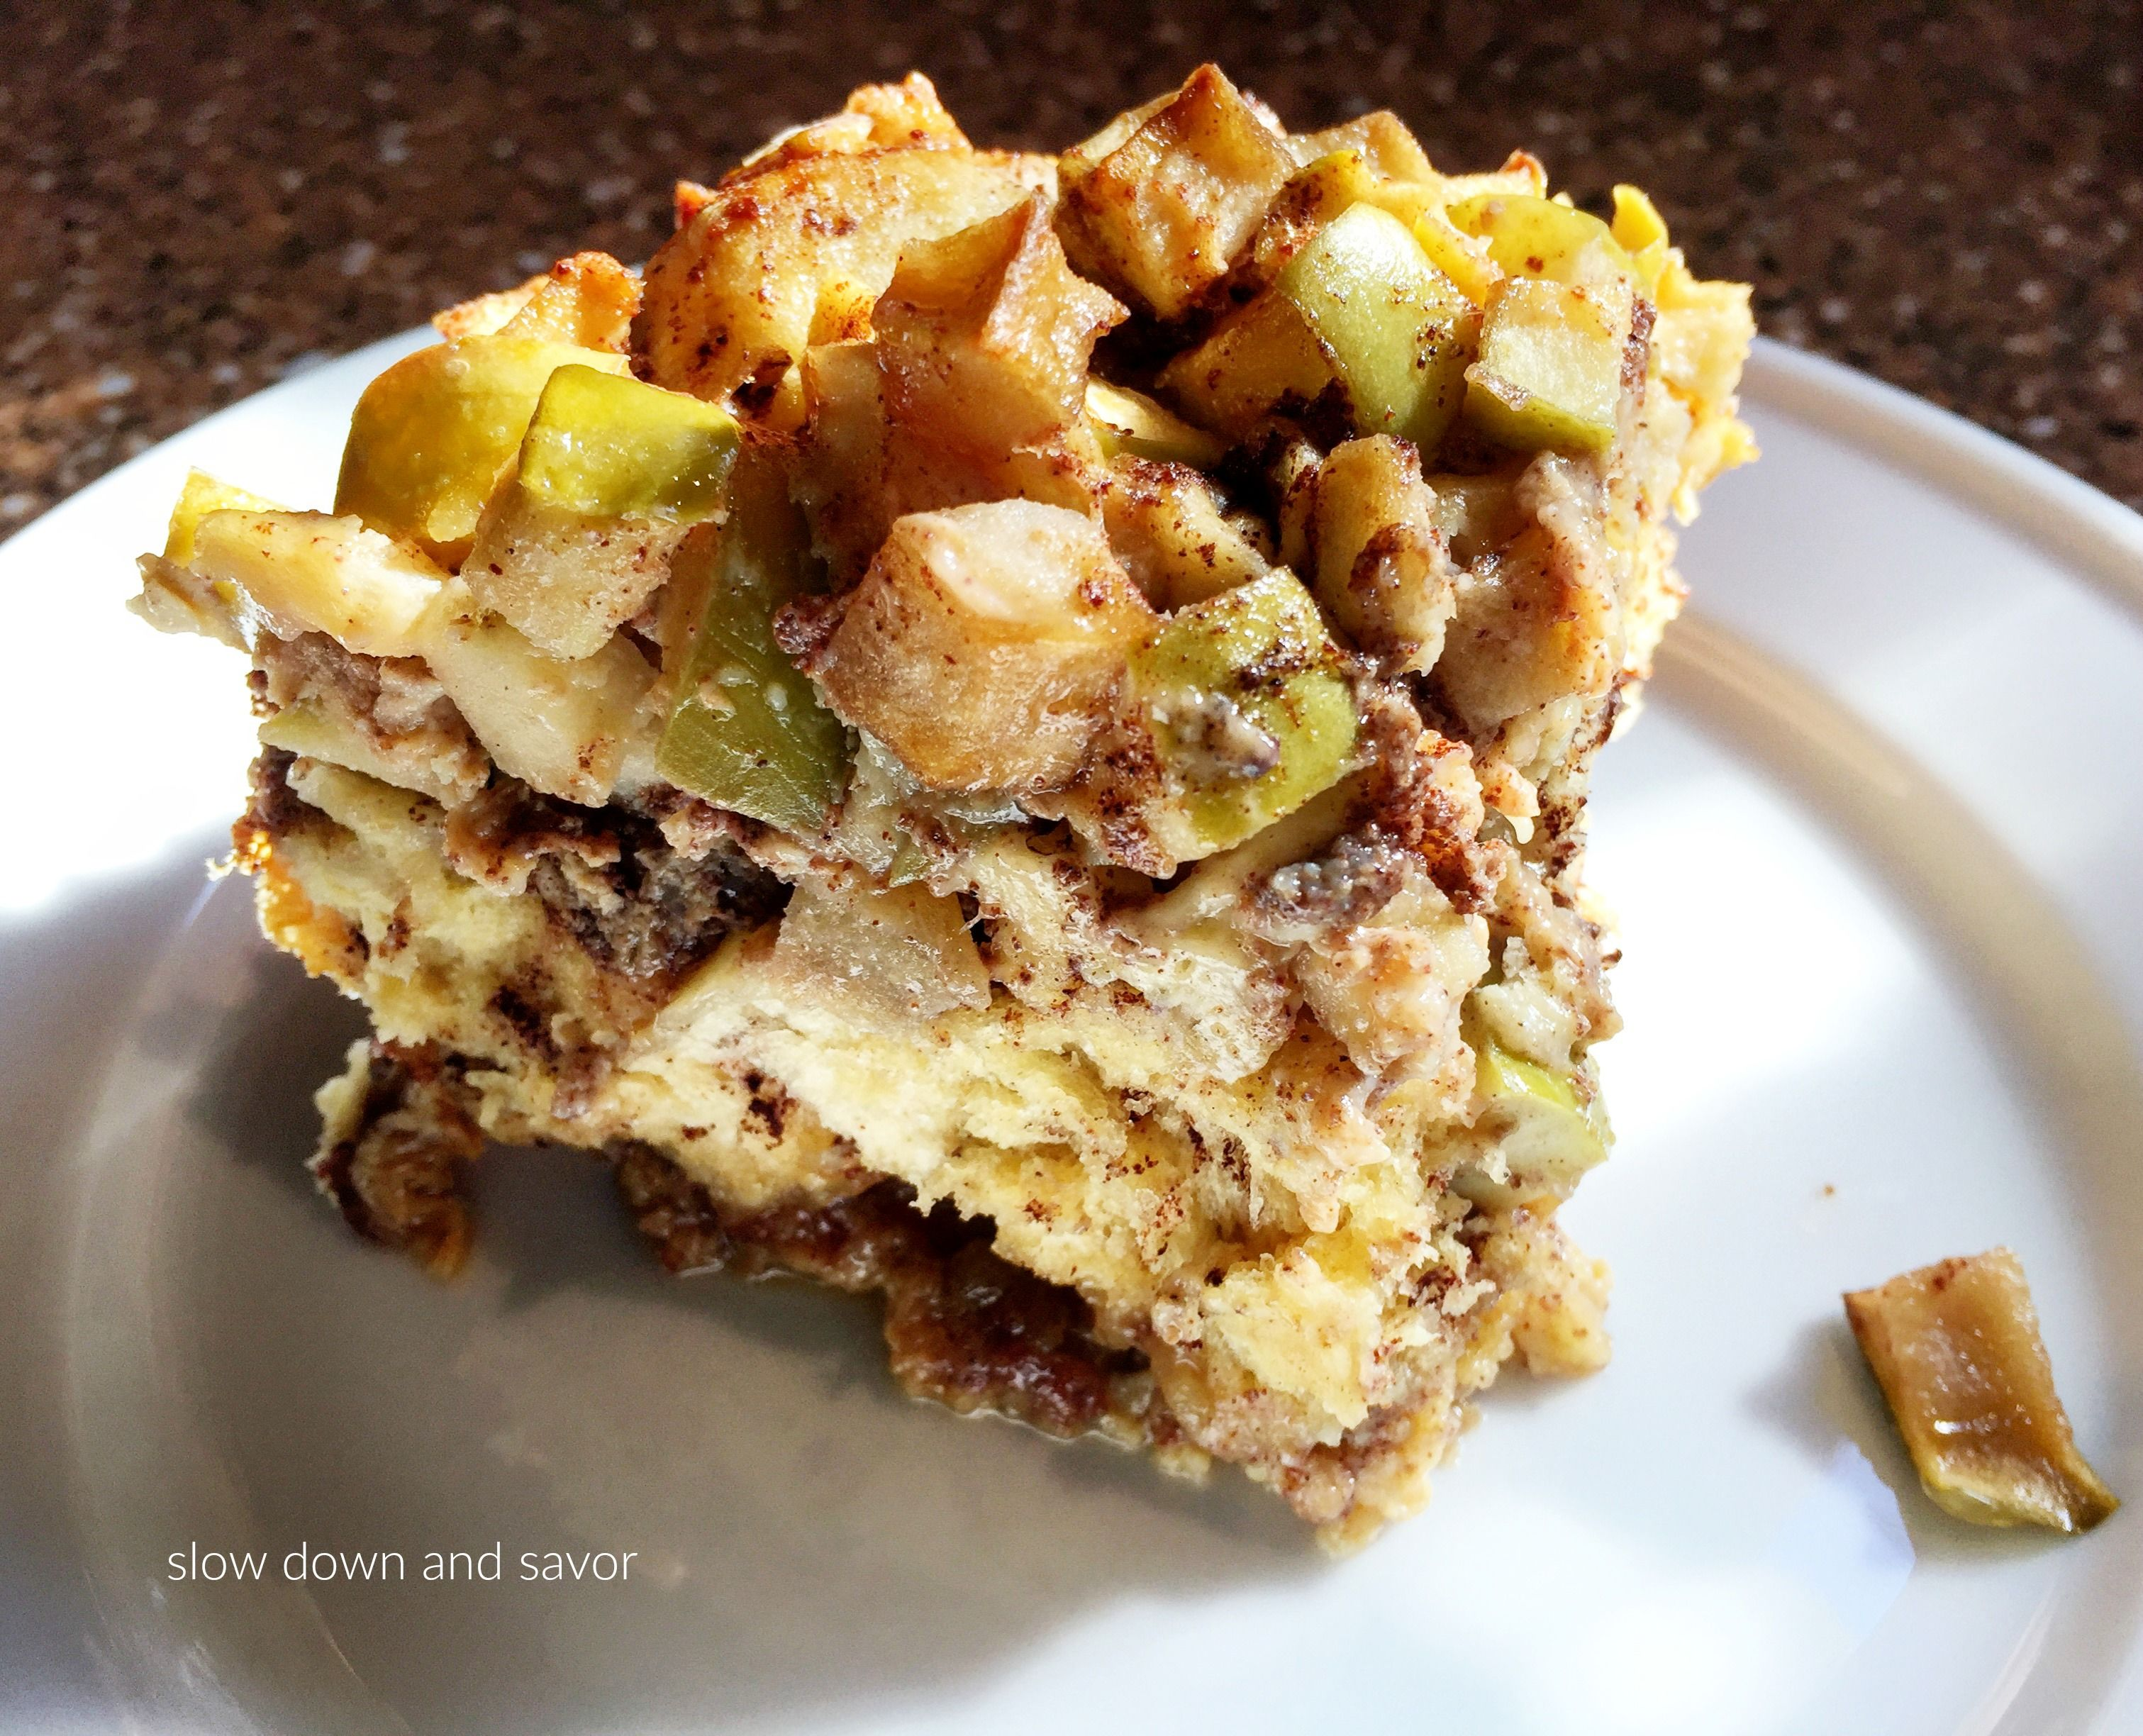 Apple Pie Bake (With images) Baked apple pie, Apple pie